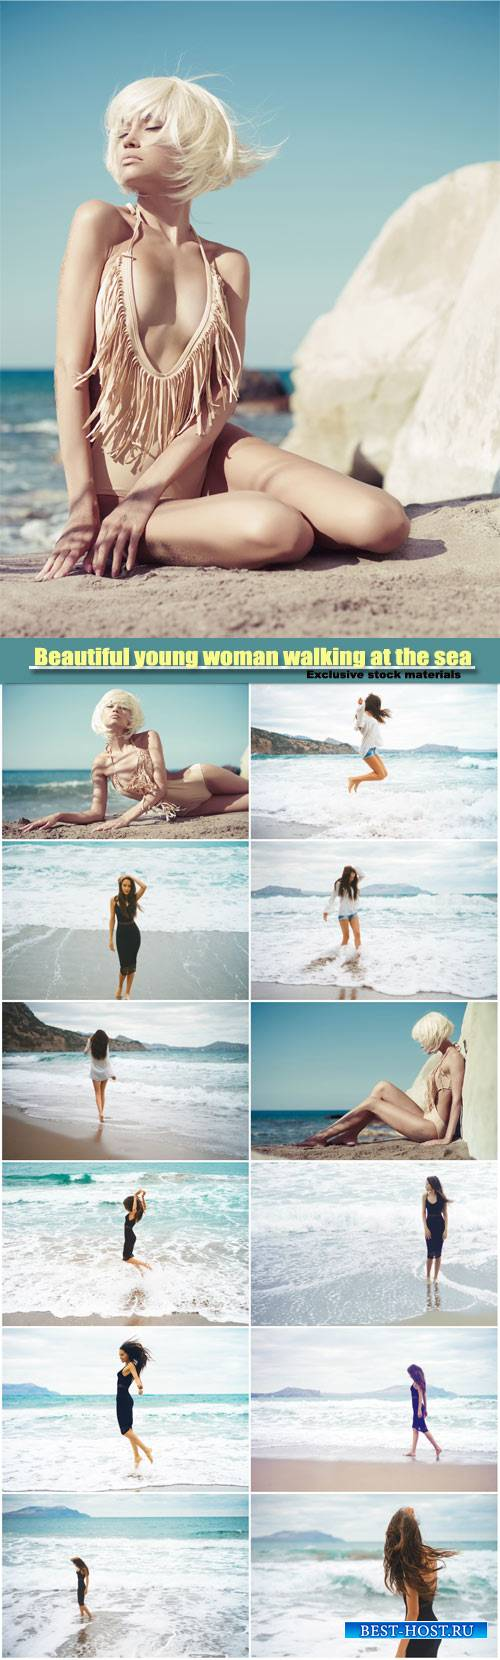 Beautiful young woman walking at the sea